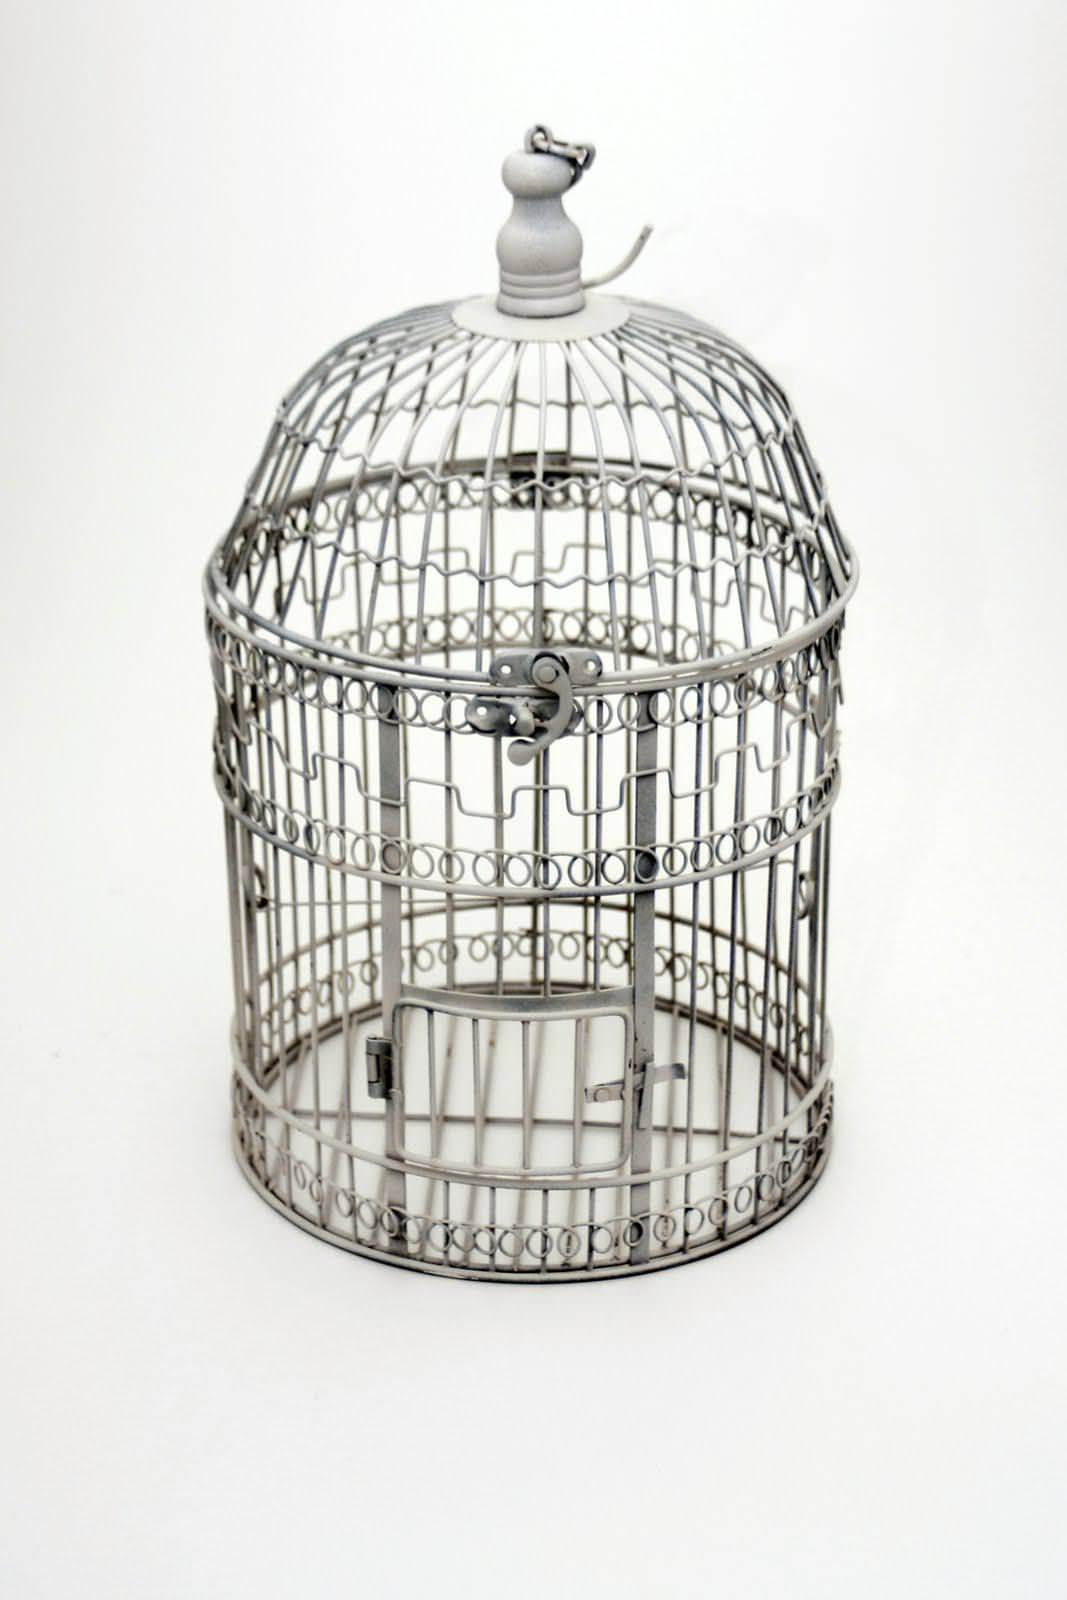 Image of: Decorative Bird Cages For Baby Shower